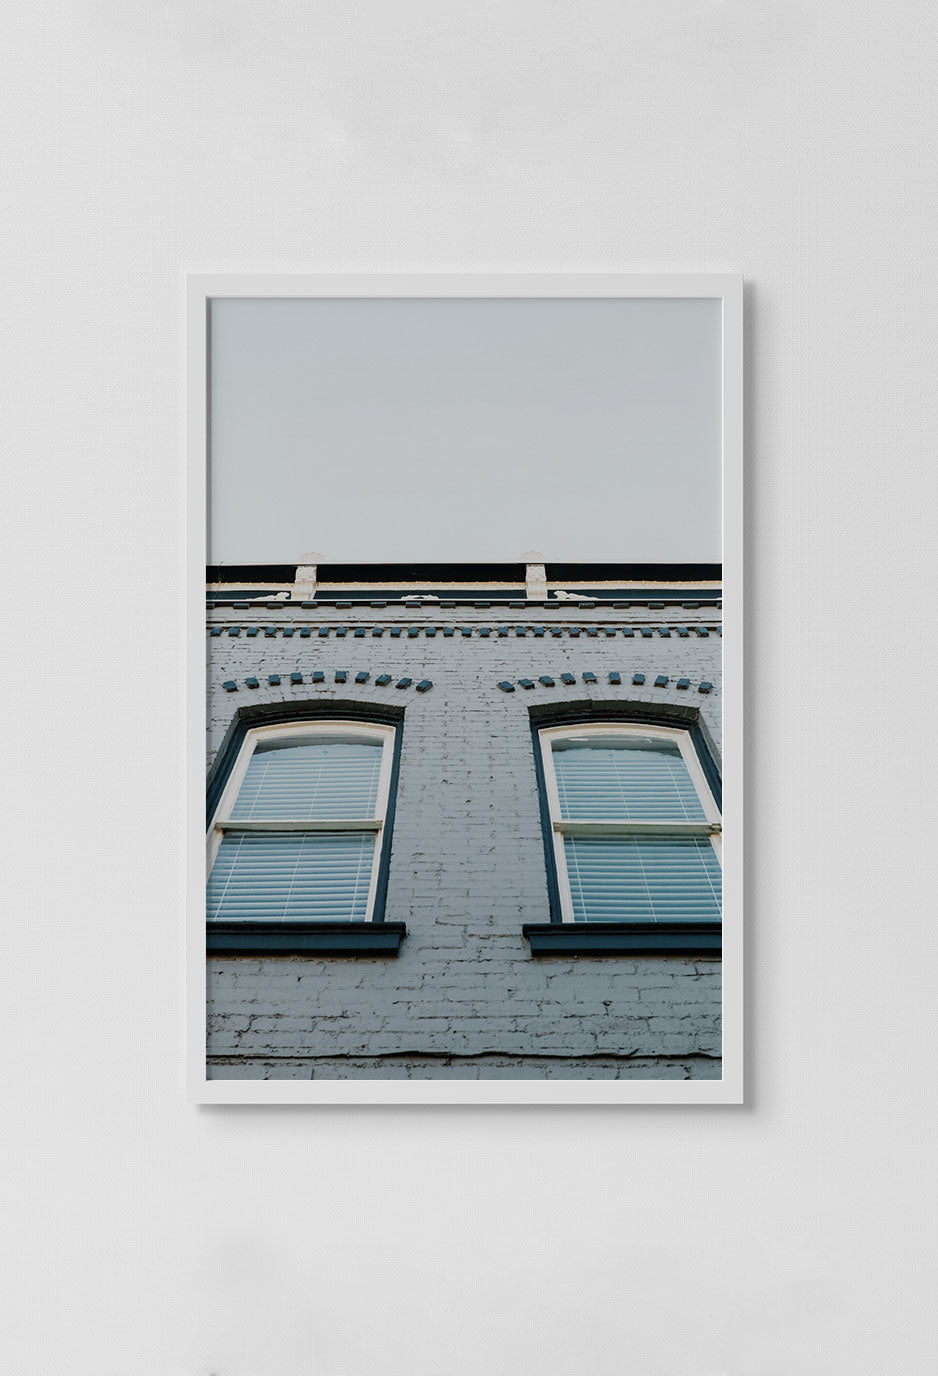 image of photo of building windows and sky in white frame on white wall.